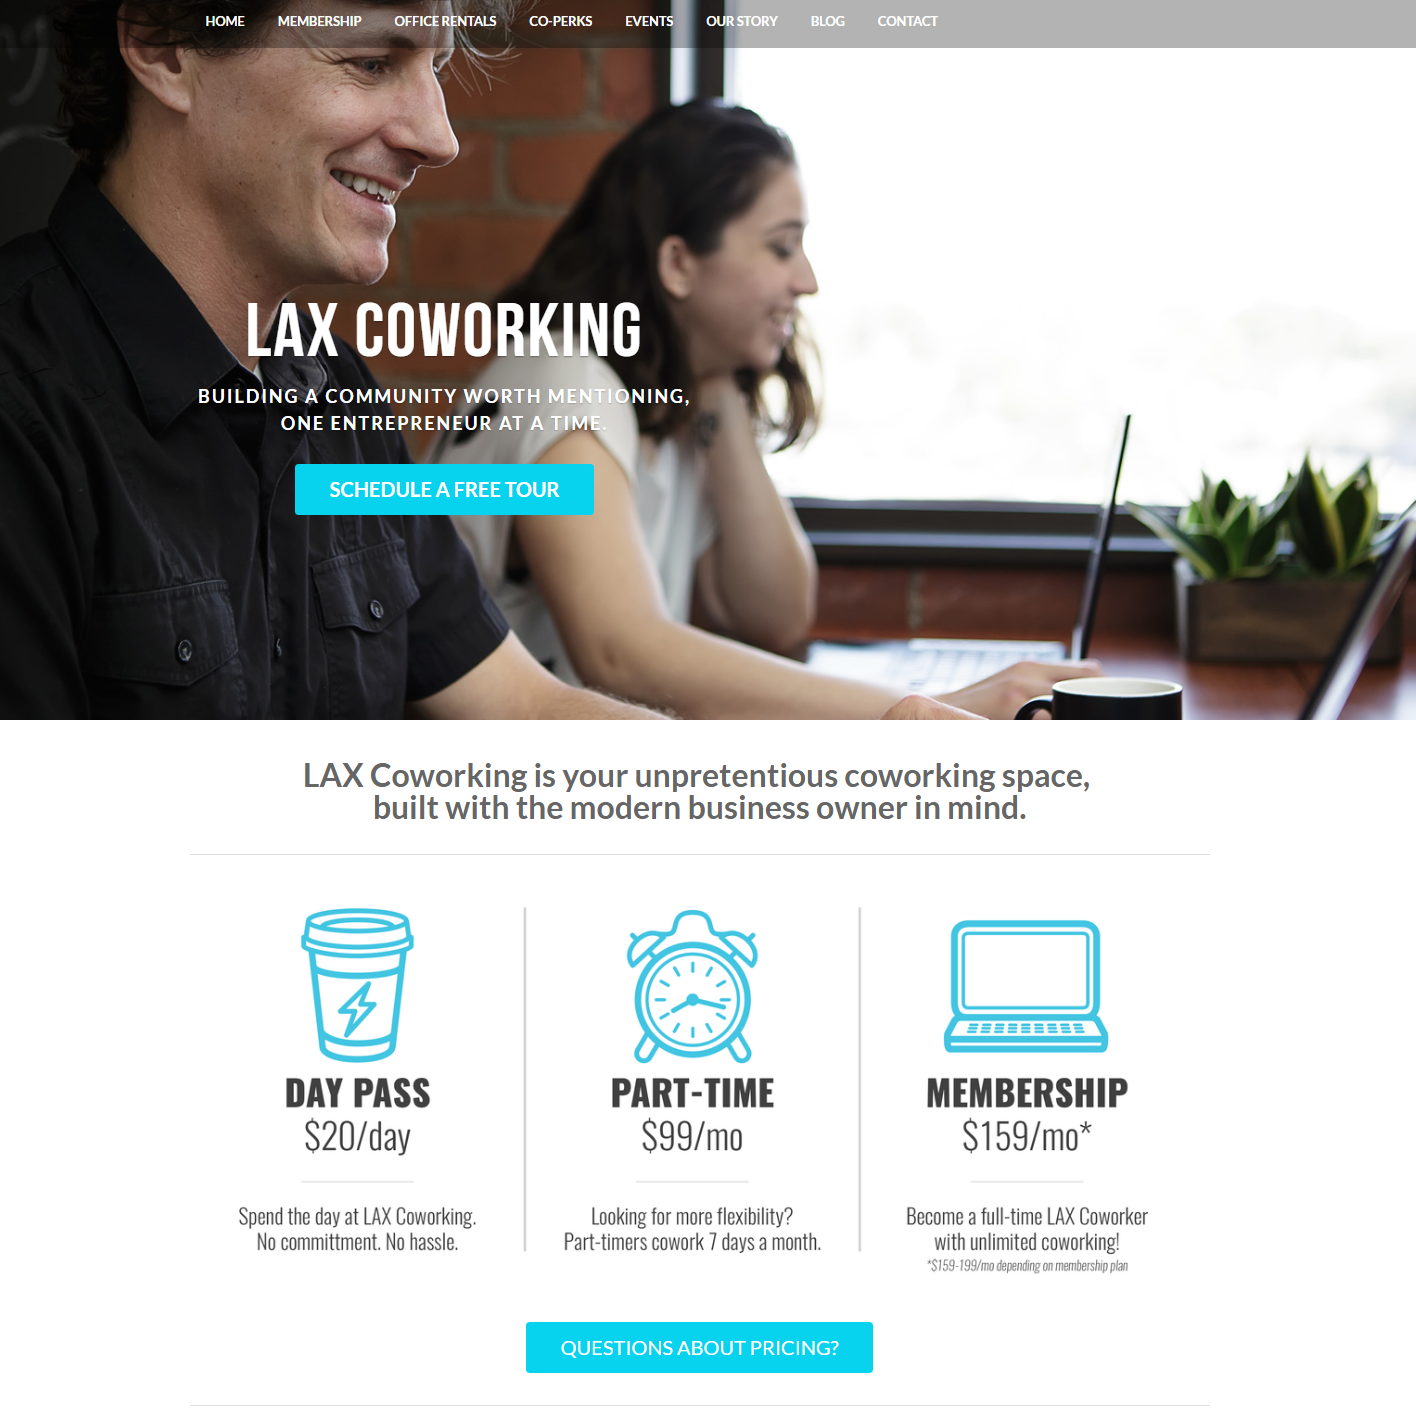 LAX Coworking